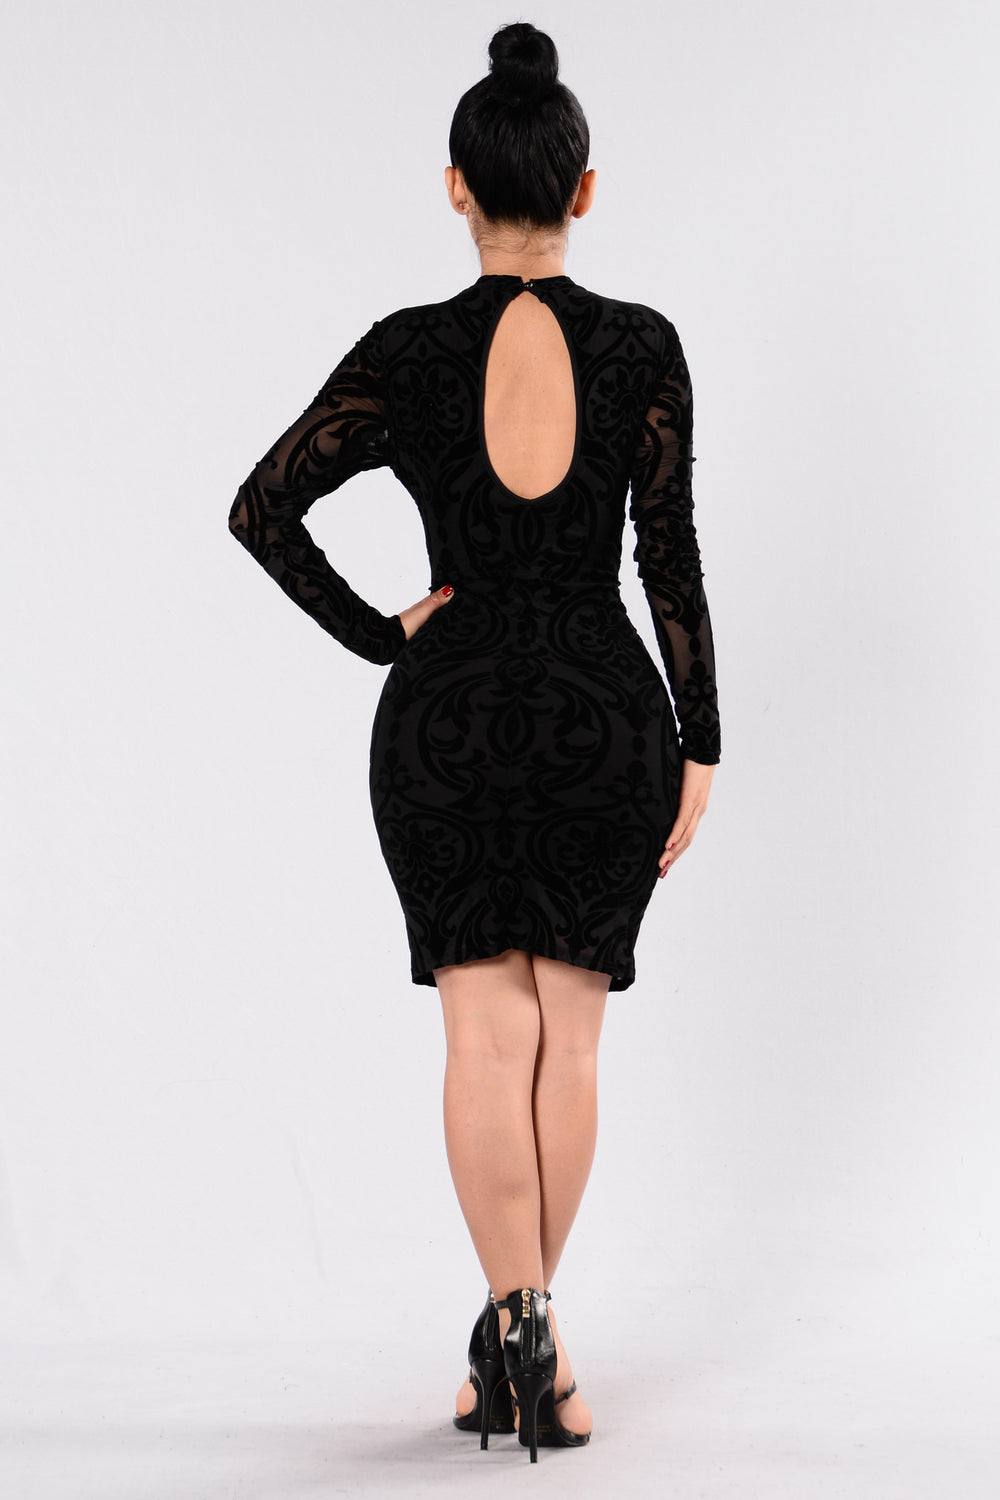 Over The Top Dress - Black